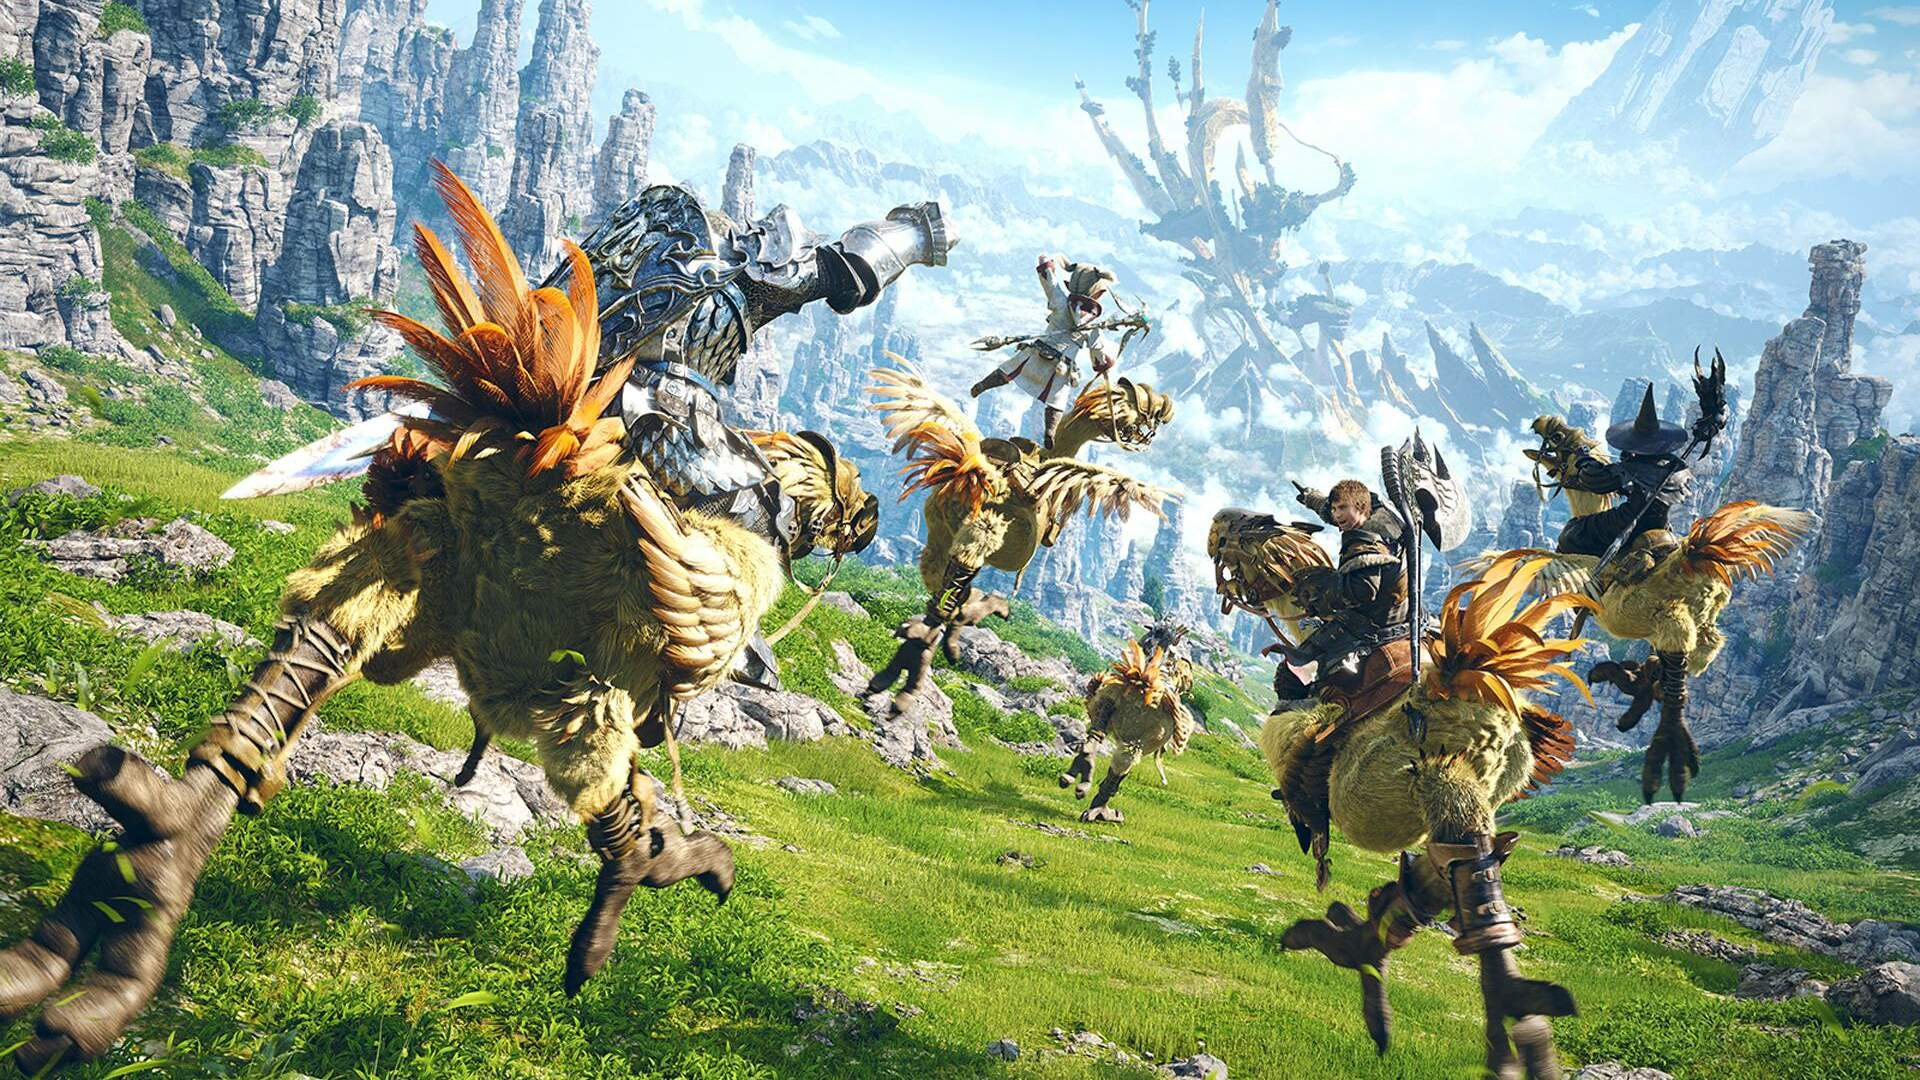 Final Fantasy 14 Is Being Turned Into a Live-Action TV Series by the Studio Behind Netflix's The Witcher